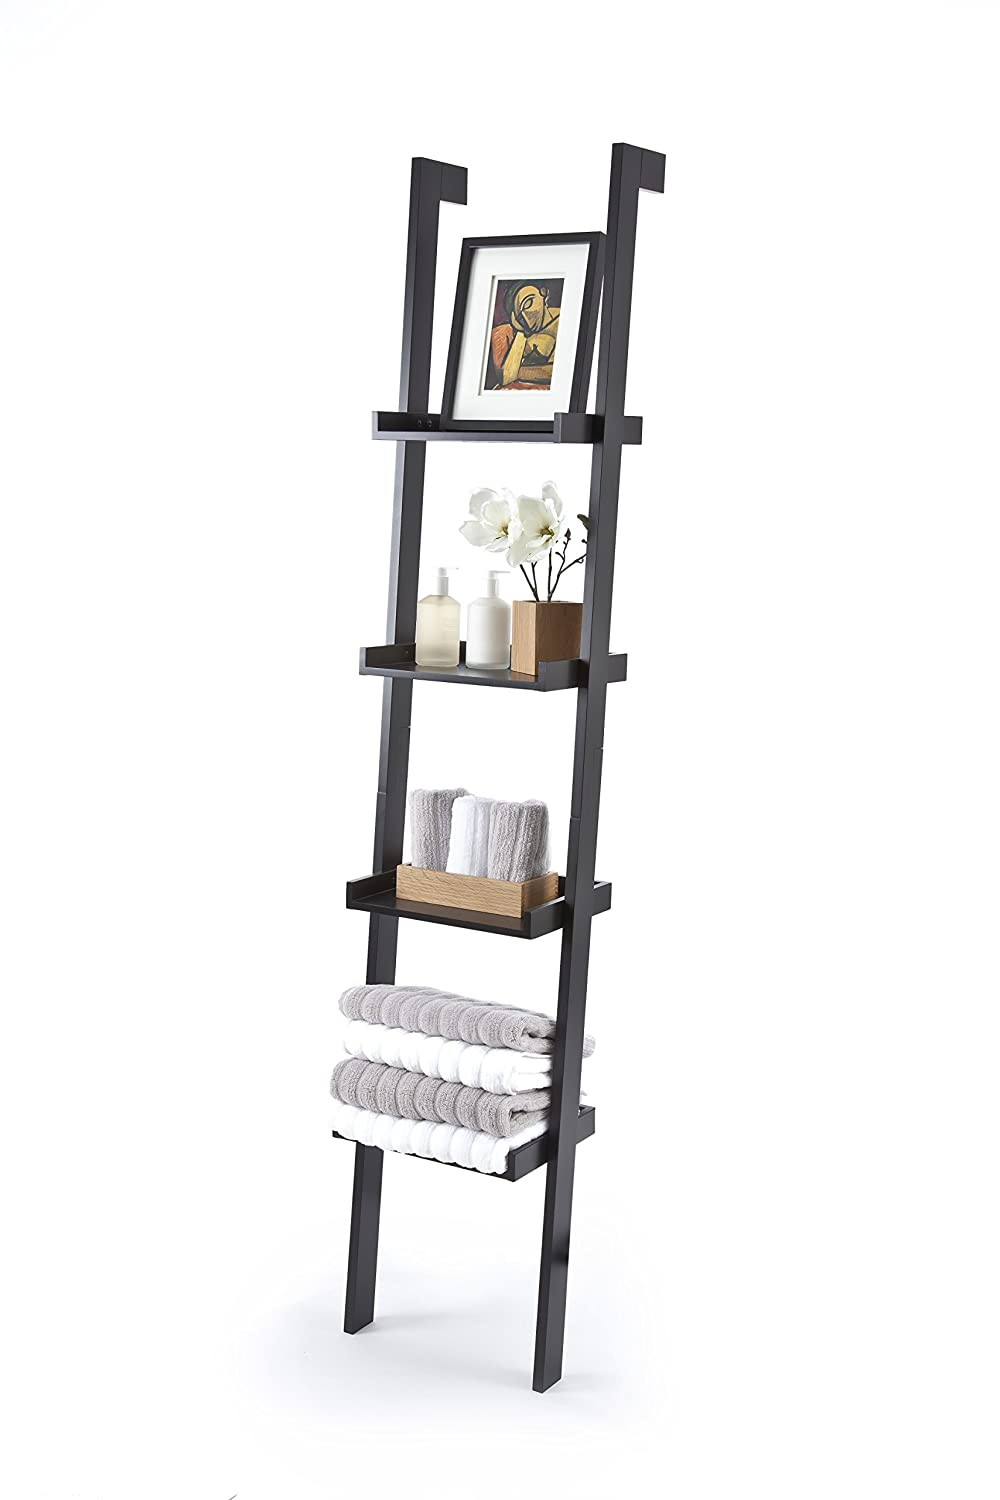 Black Ladder Leaning Bookshelf, wood/MDF with black paint finish, 4 Tiers - Sennen Range by Elegant Brands Elegant Brands Ltd